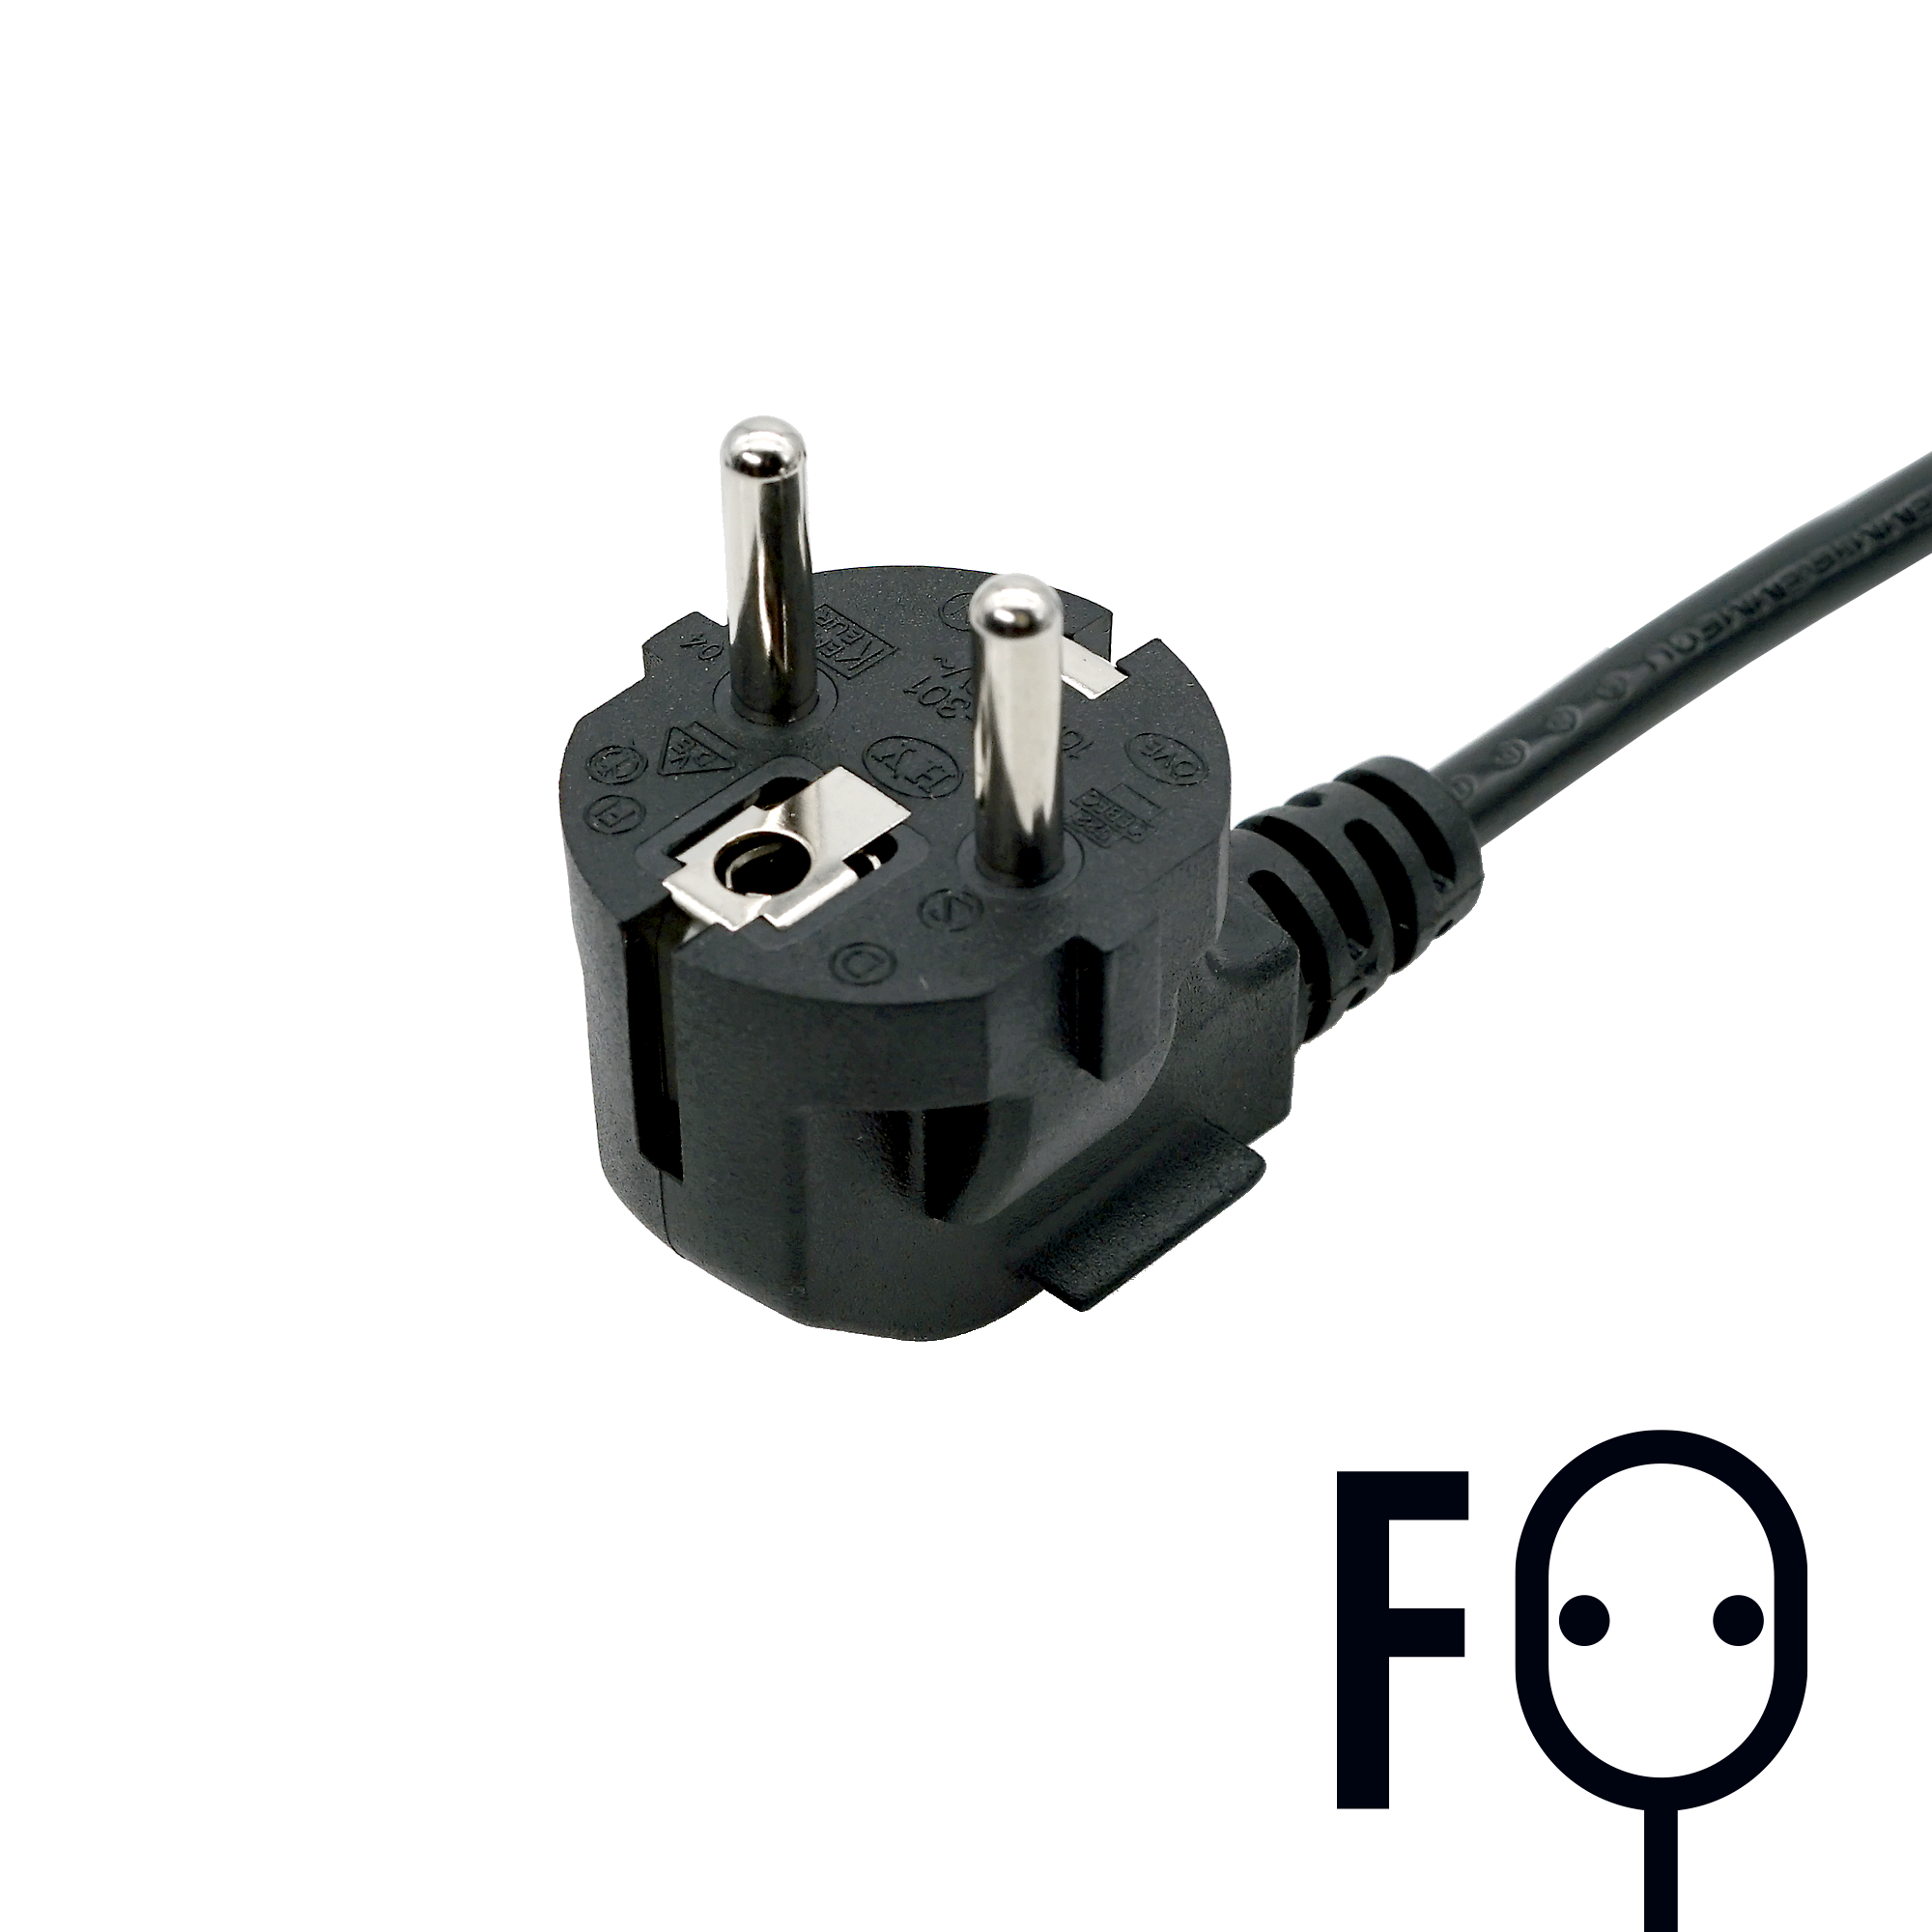 Hover Type-F International Power Cord